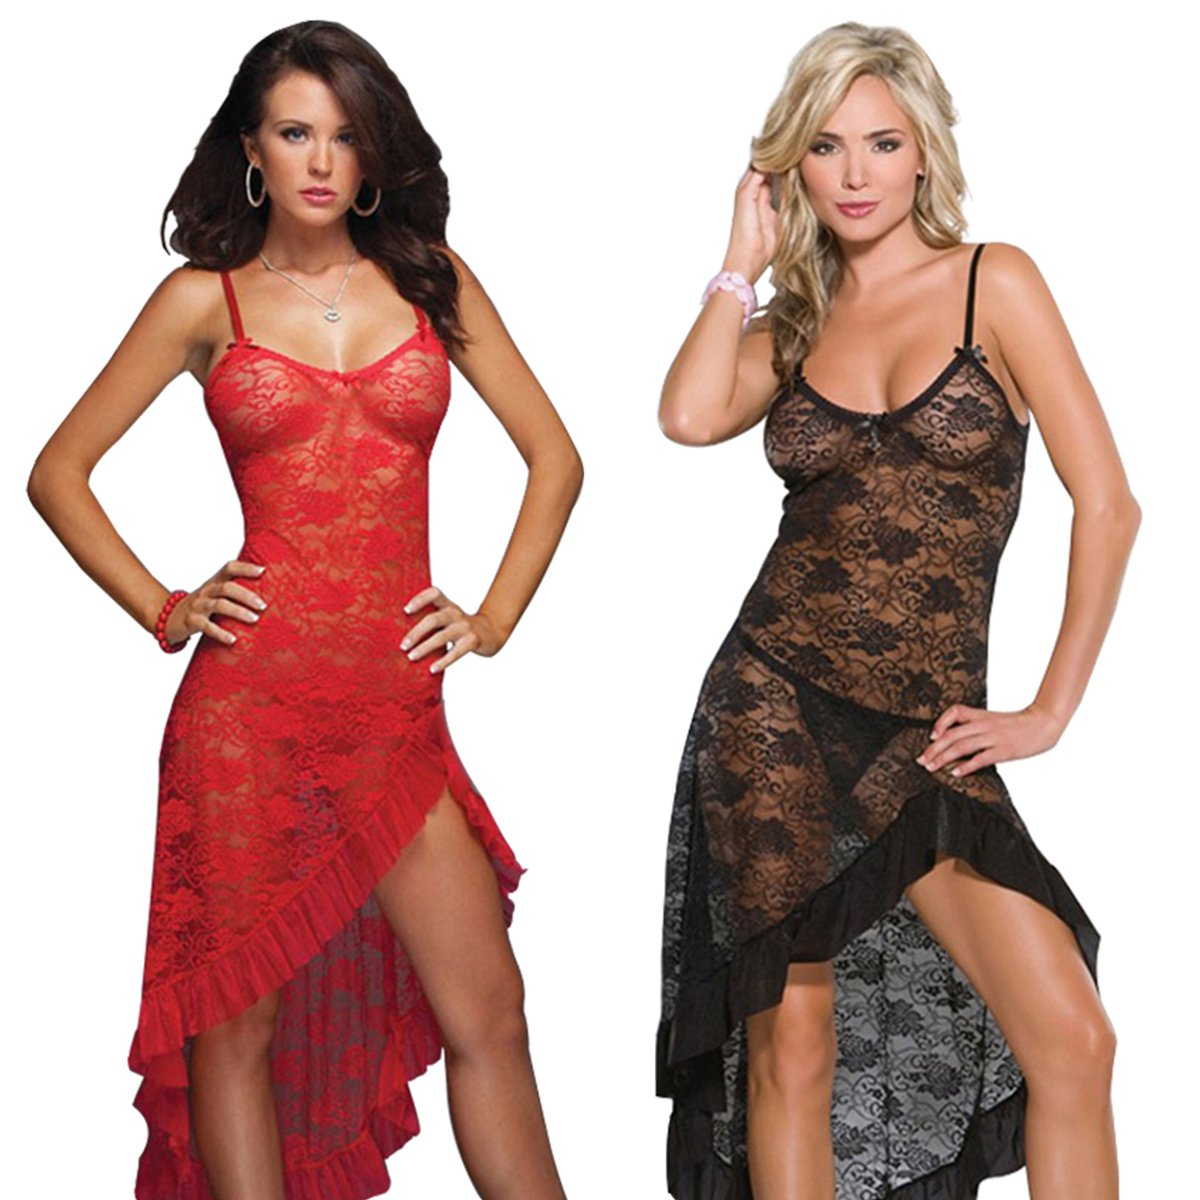 LOVELYBOBO 2 Pack Women Lace Nightwear Lingerie Plus Size Lace High Split Long Gown Dress Sexy Babydoll Chemise (Black+Red)